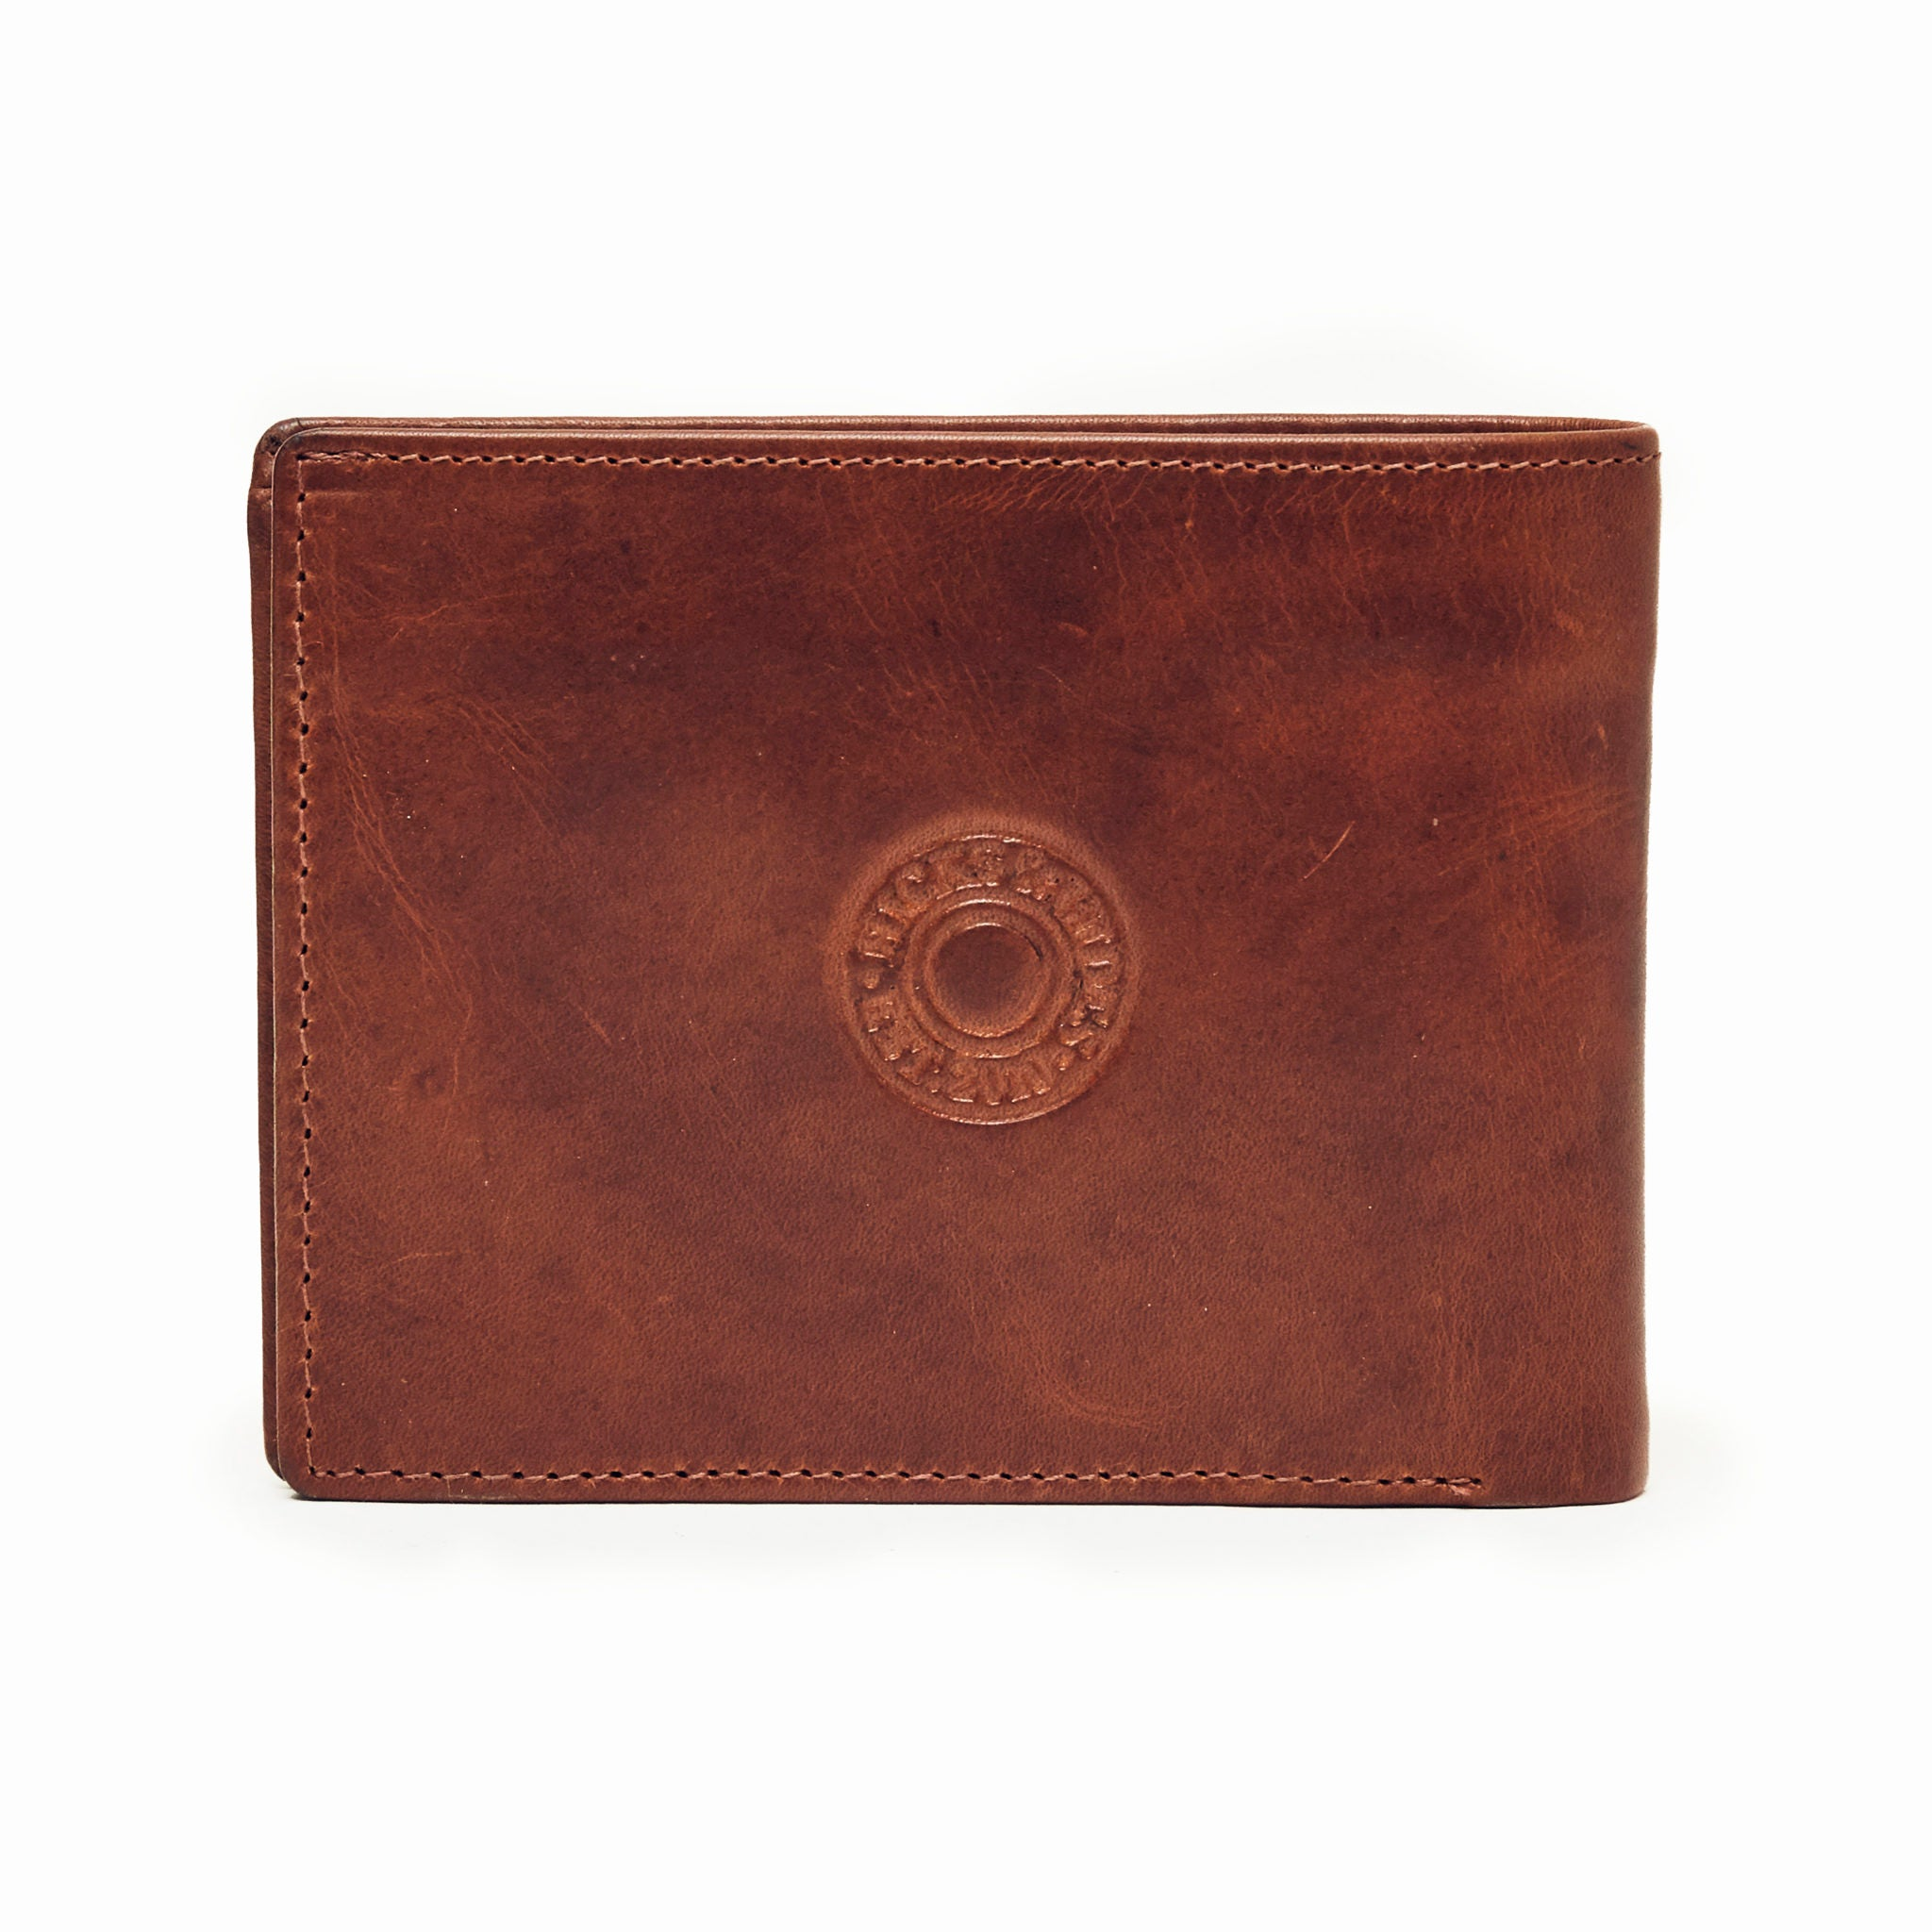 Hicks and Hides 12 Bore Leather Wallet for Men in Cognac